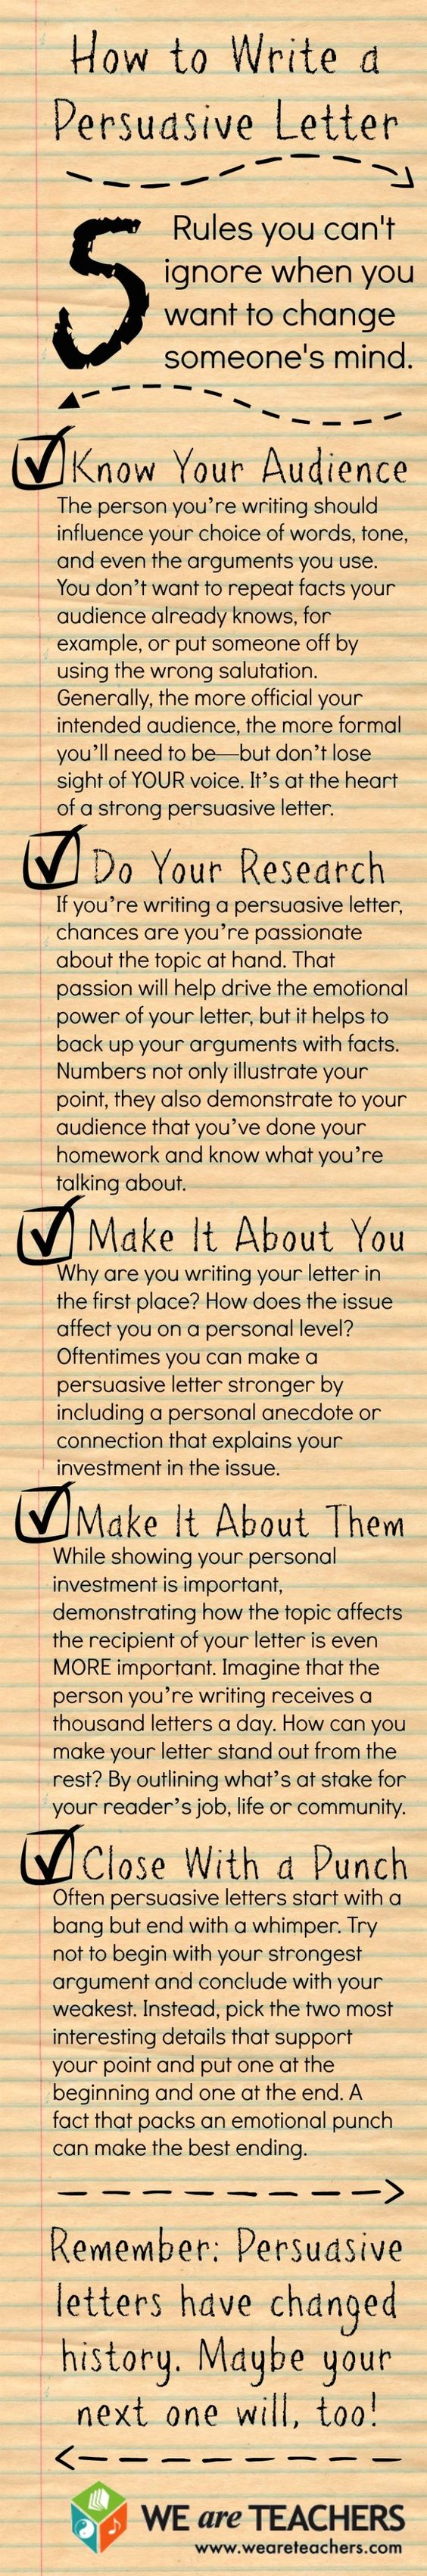 Persuasive essay writing tips